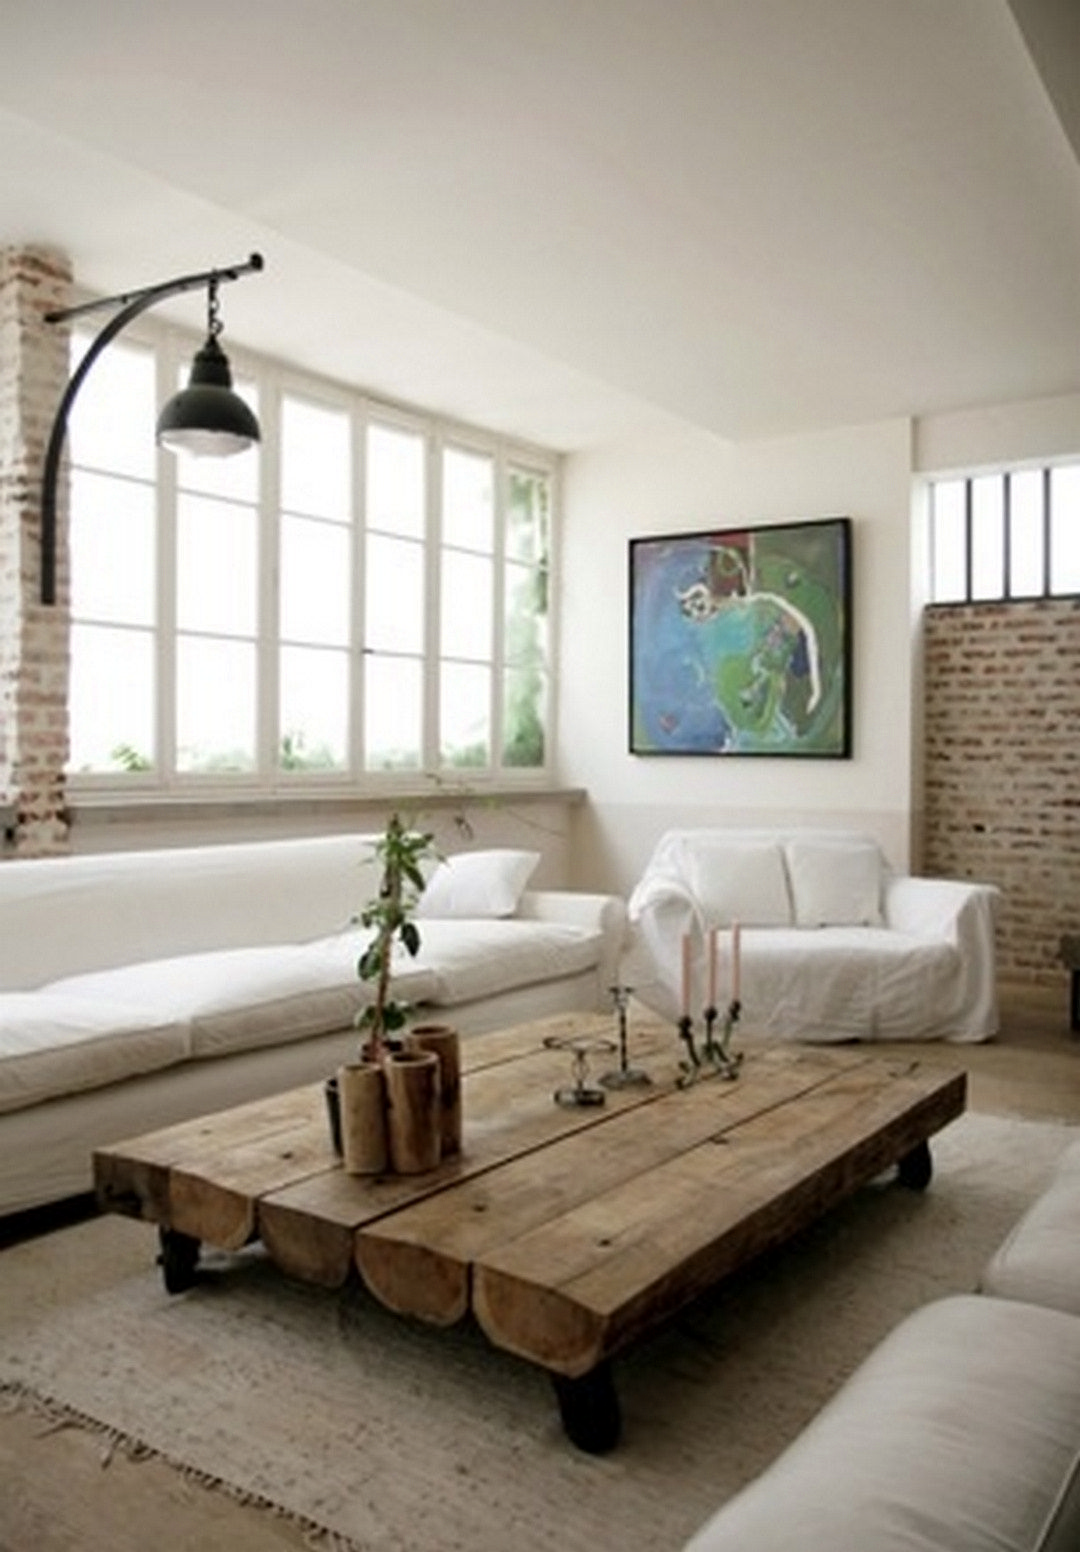 Professional Room Designer: How To Decorate Your Coffee Table Design Like A Pro